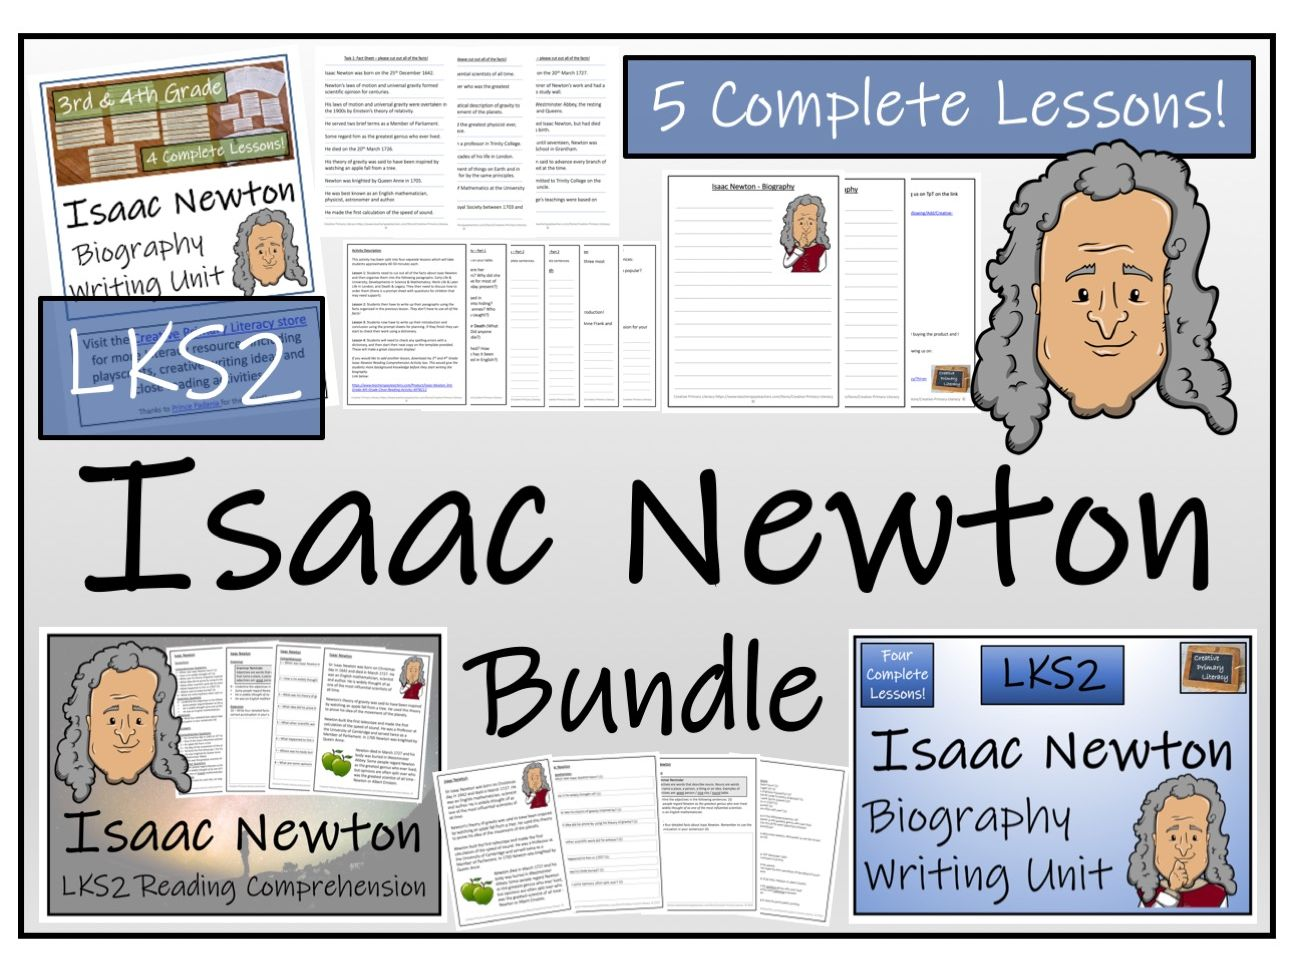 LKS2 Science - Isaac Newton Reading Comprehension & Biography Writing Bundle